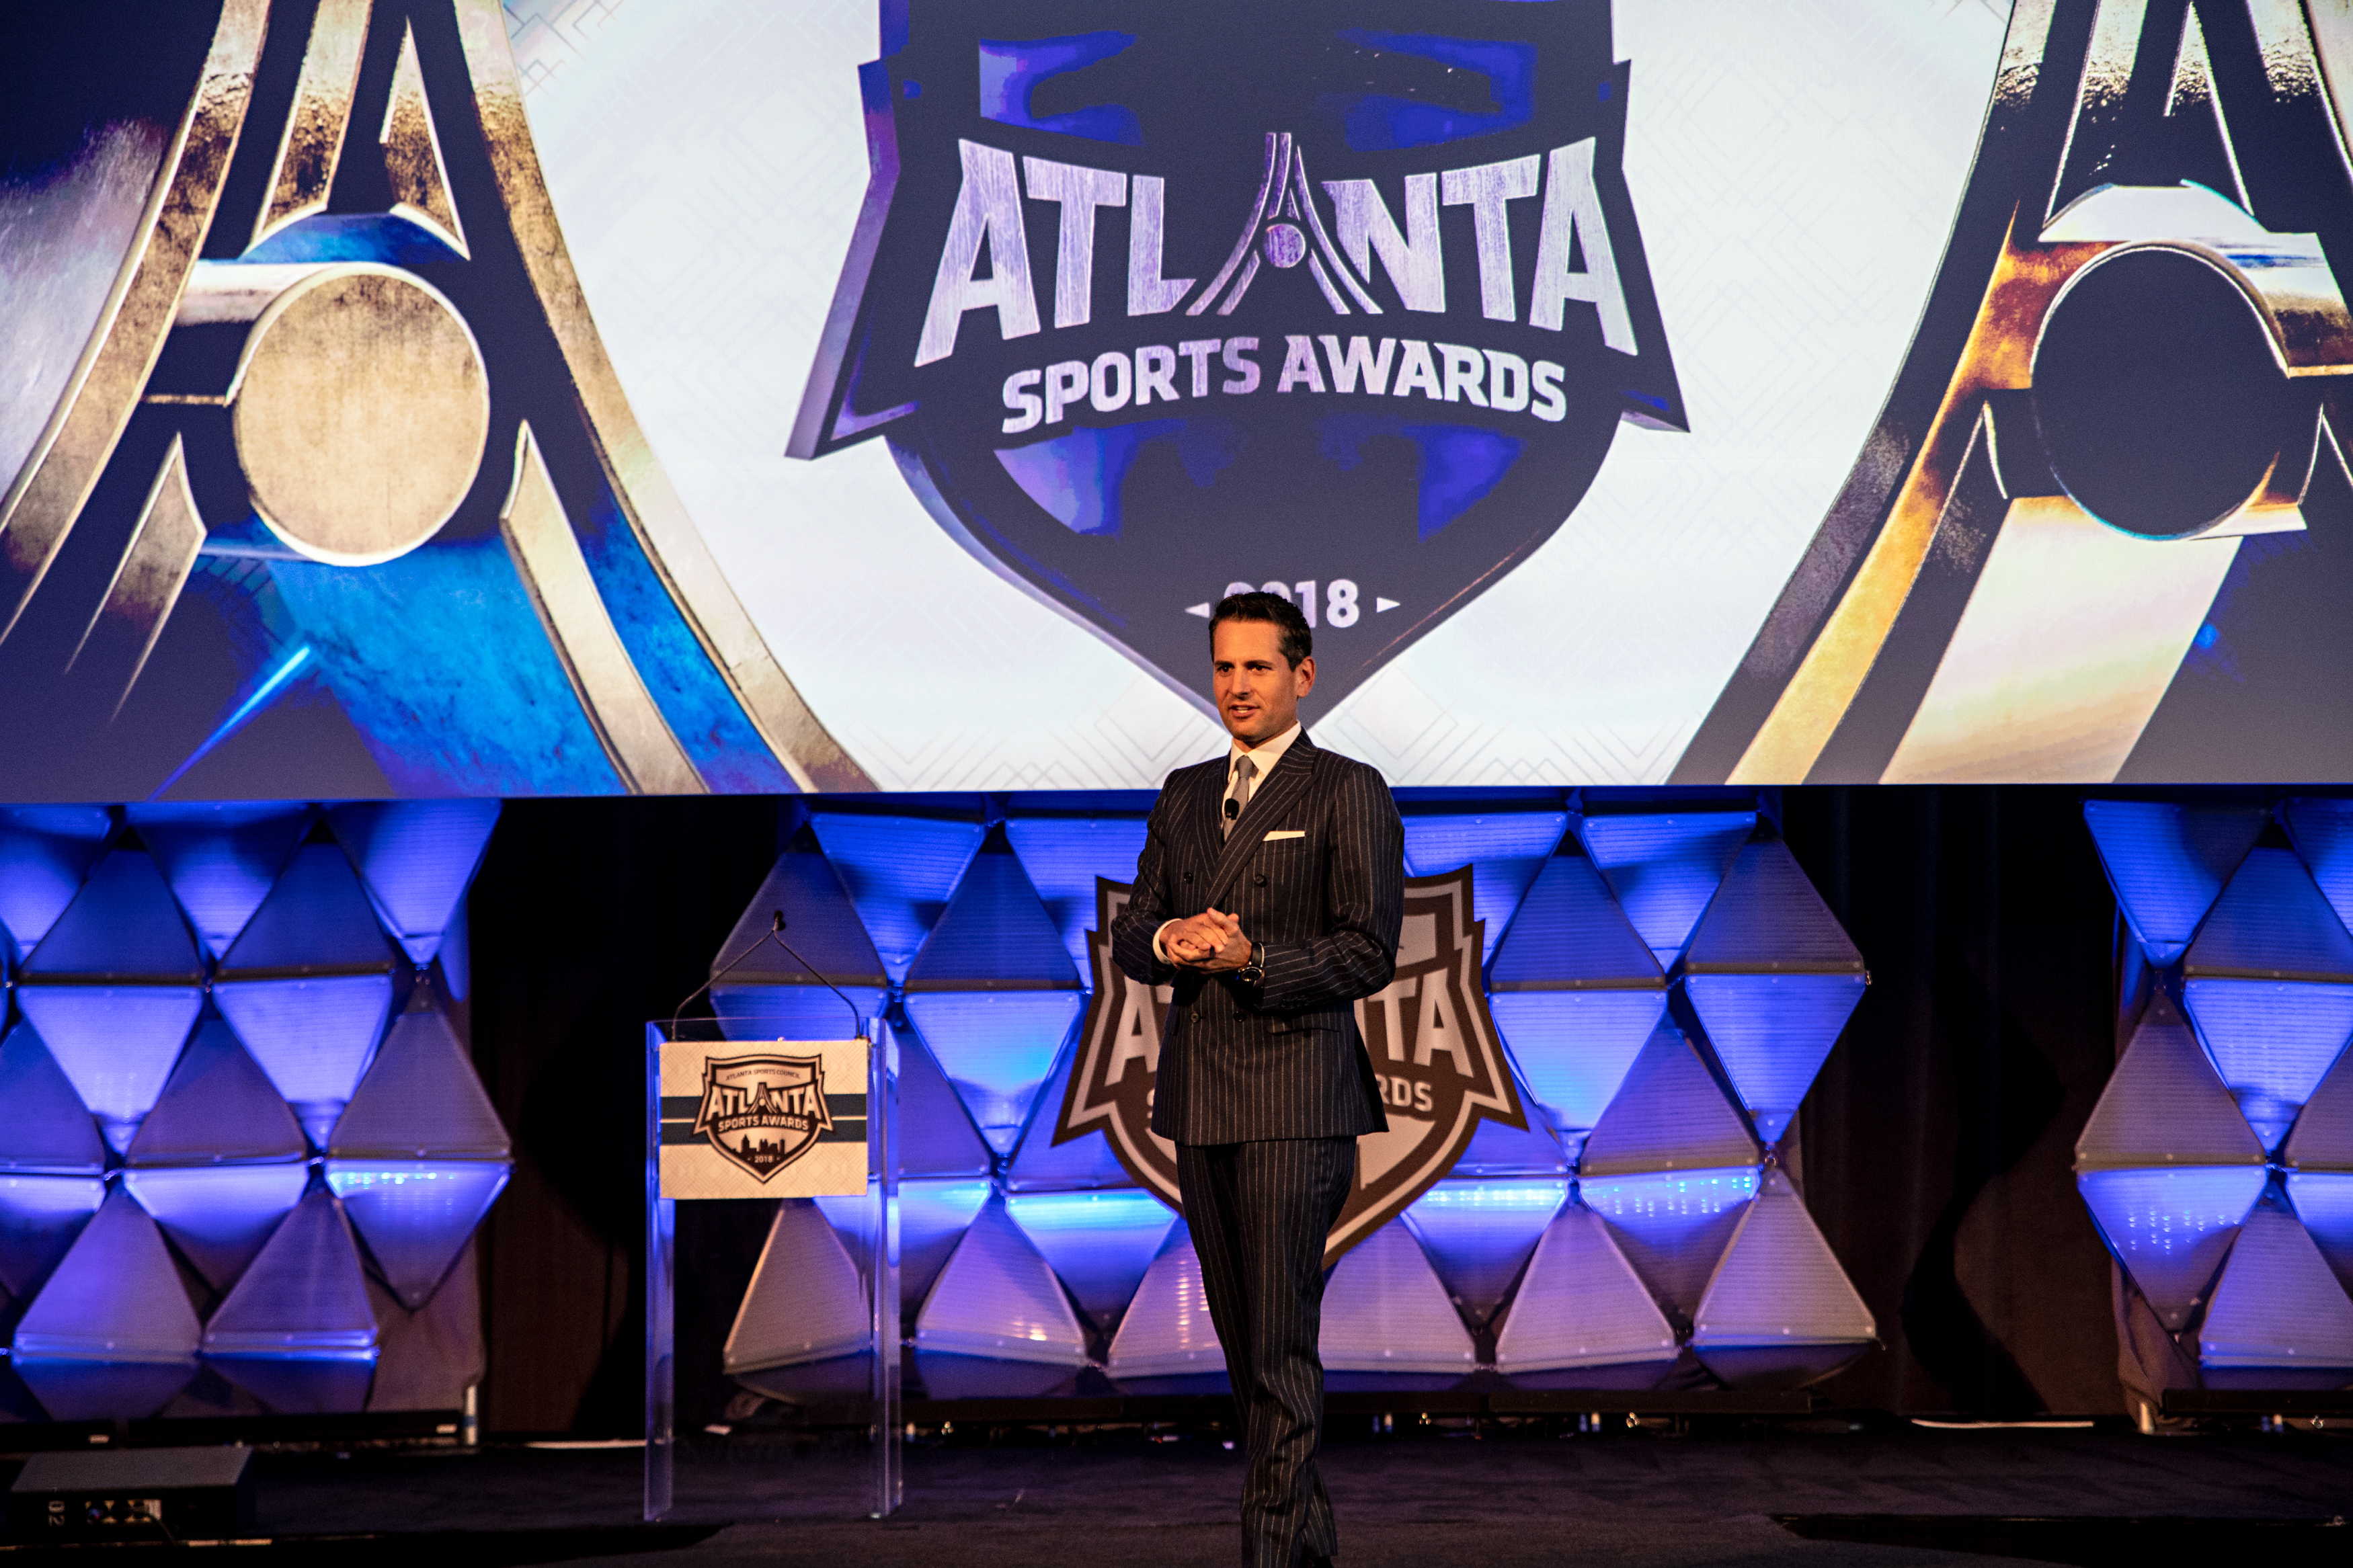 Atlanta Sports Awards 2018